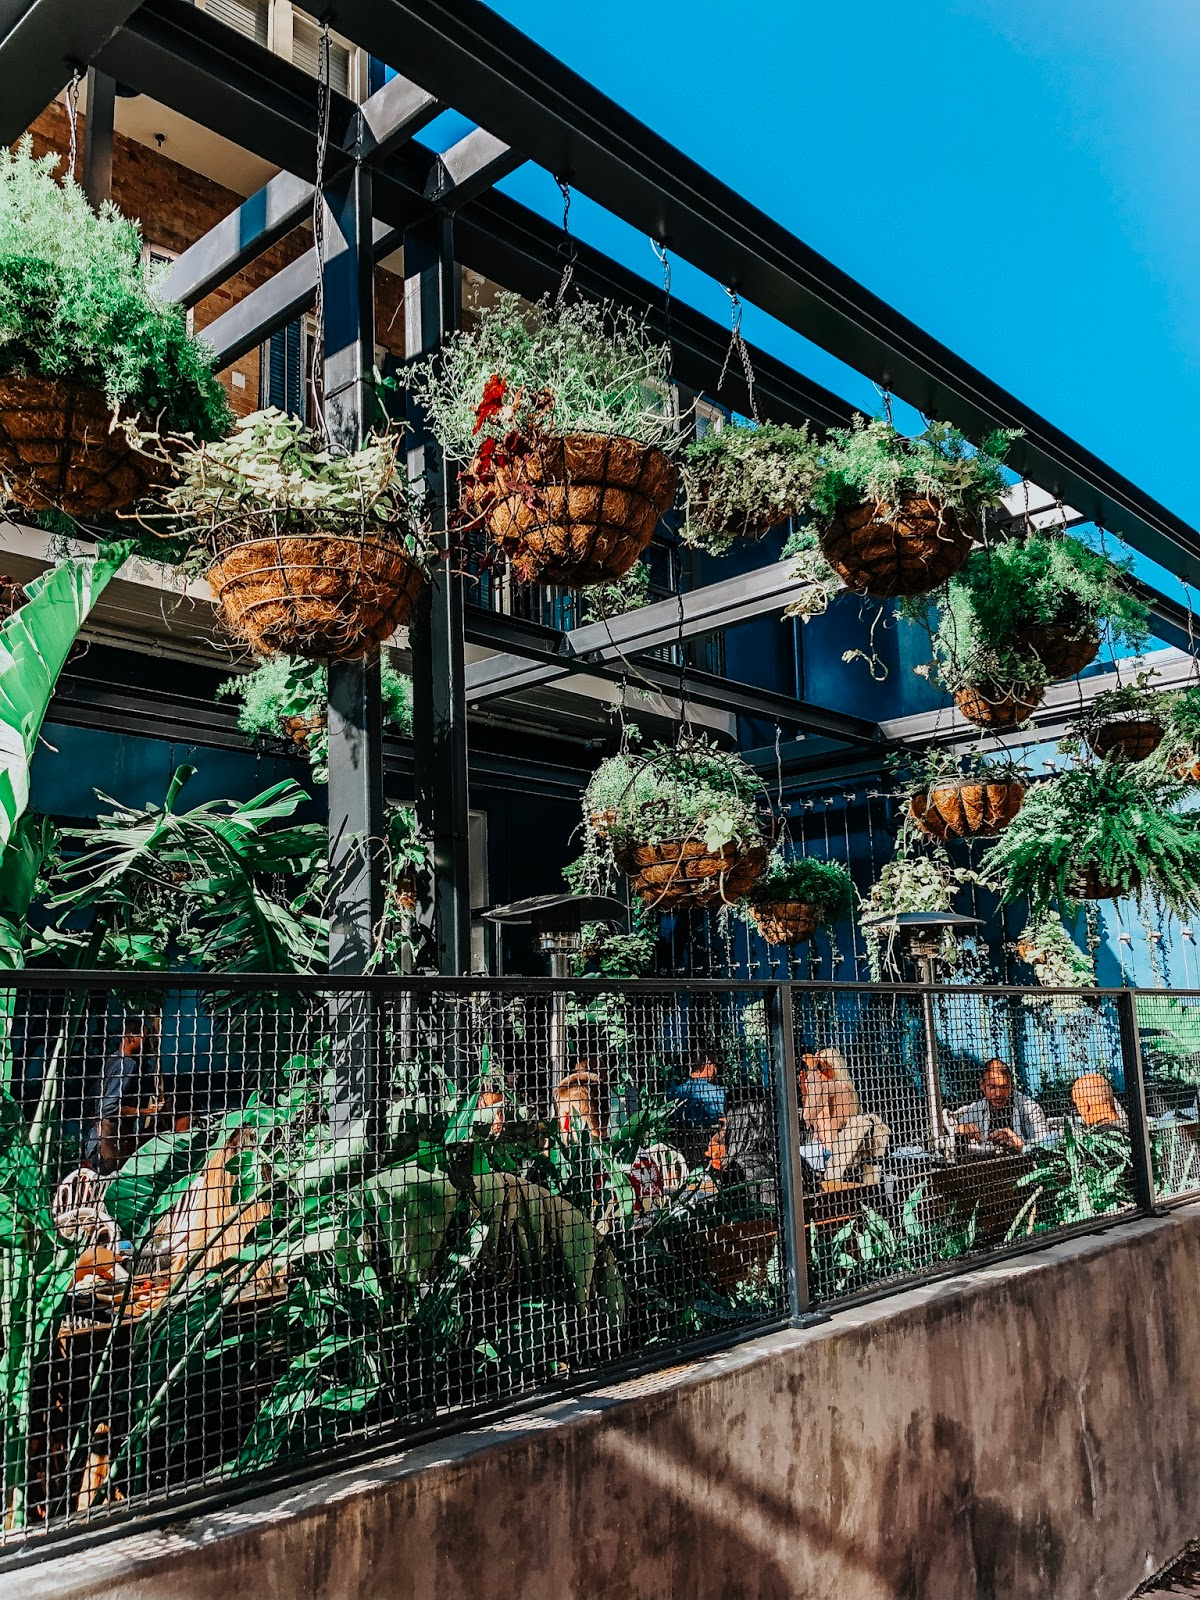 Cute corner restaurant in New Orleans with plants strung up for decoration